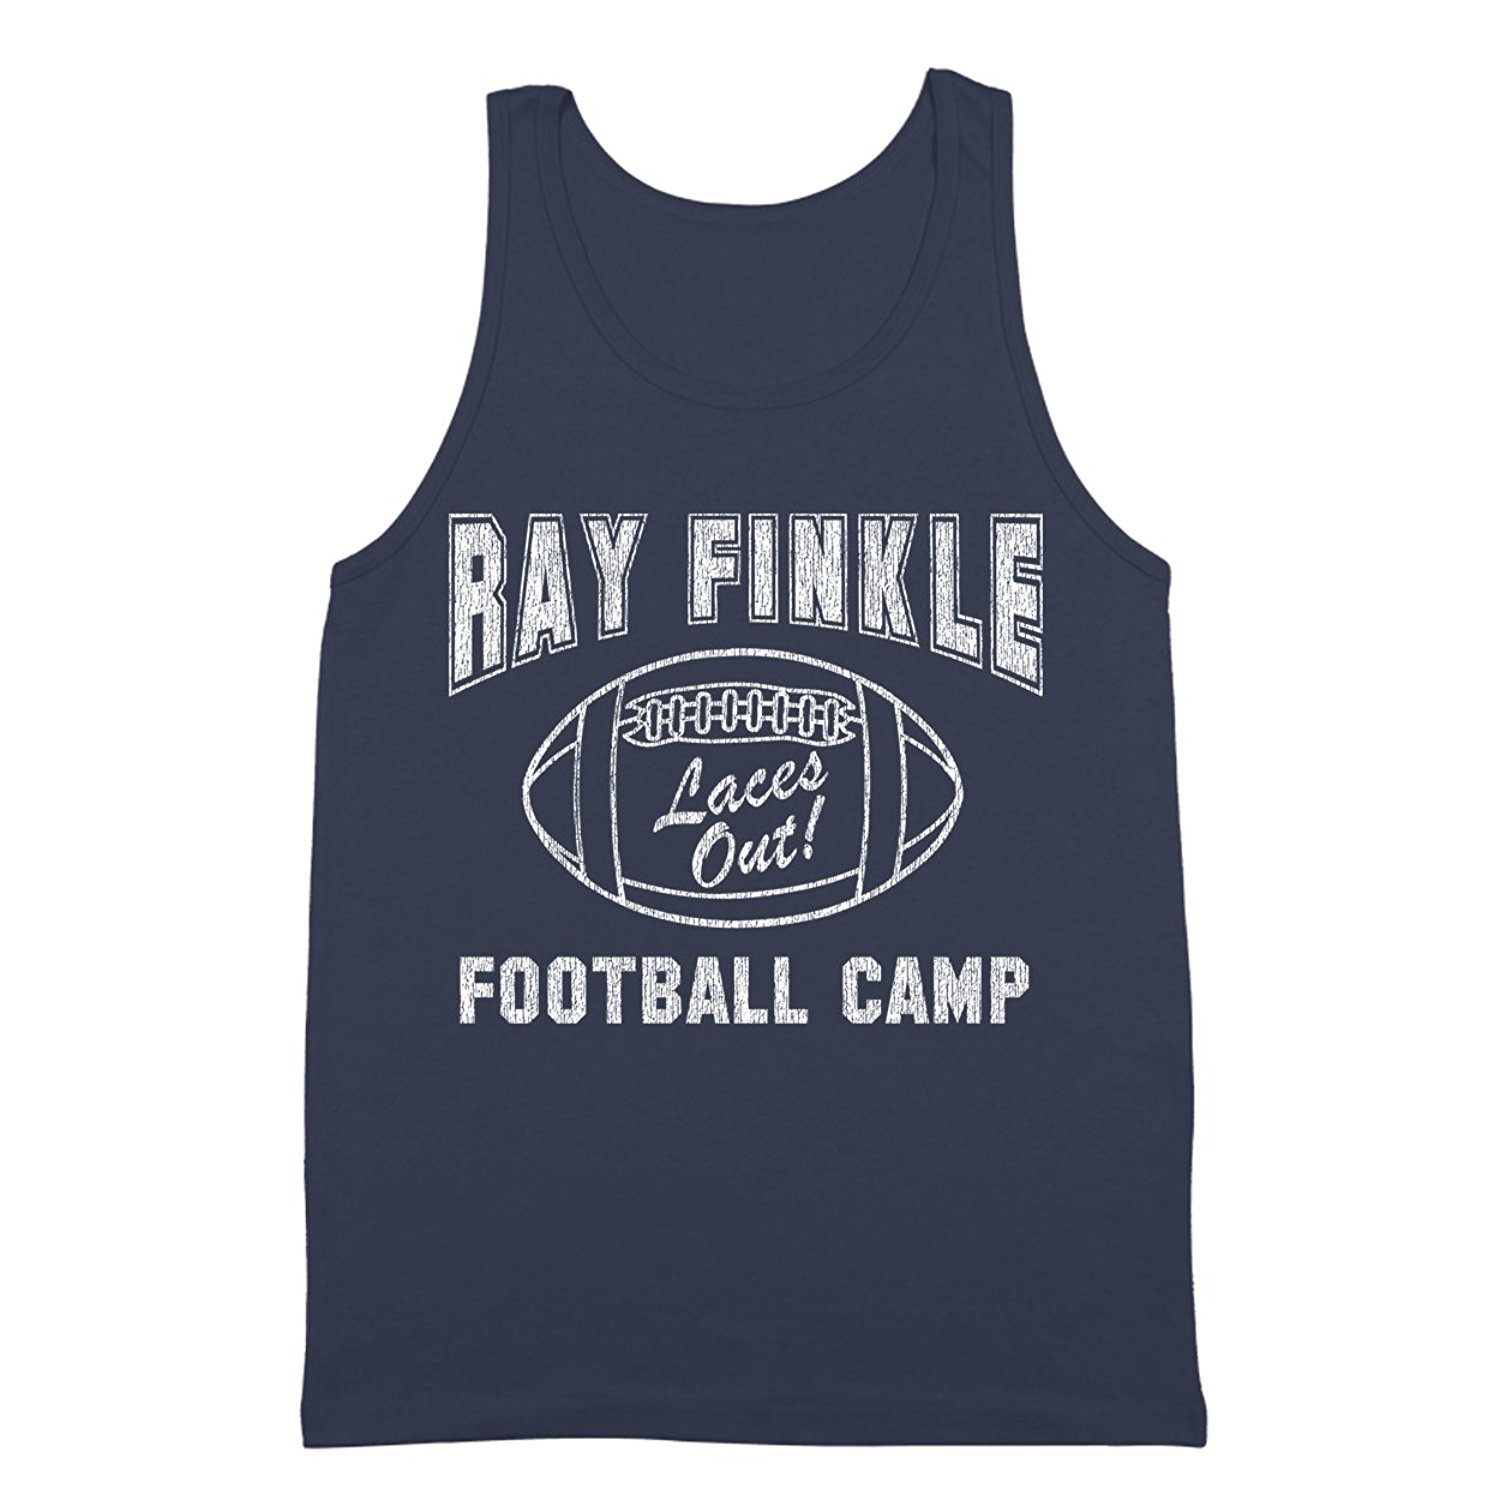 Ray Finkle Football Camp Laces Out Funny Movie Ace Field Goal Finkle 90s  Movie Humor Mens 0032b9c59